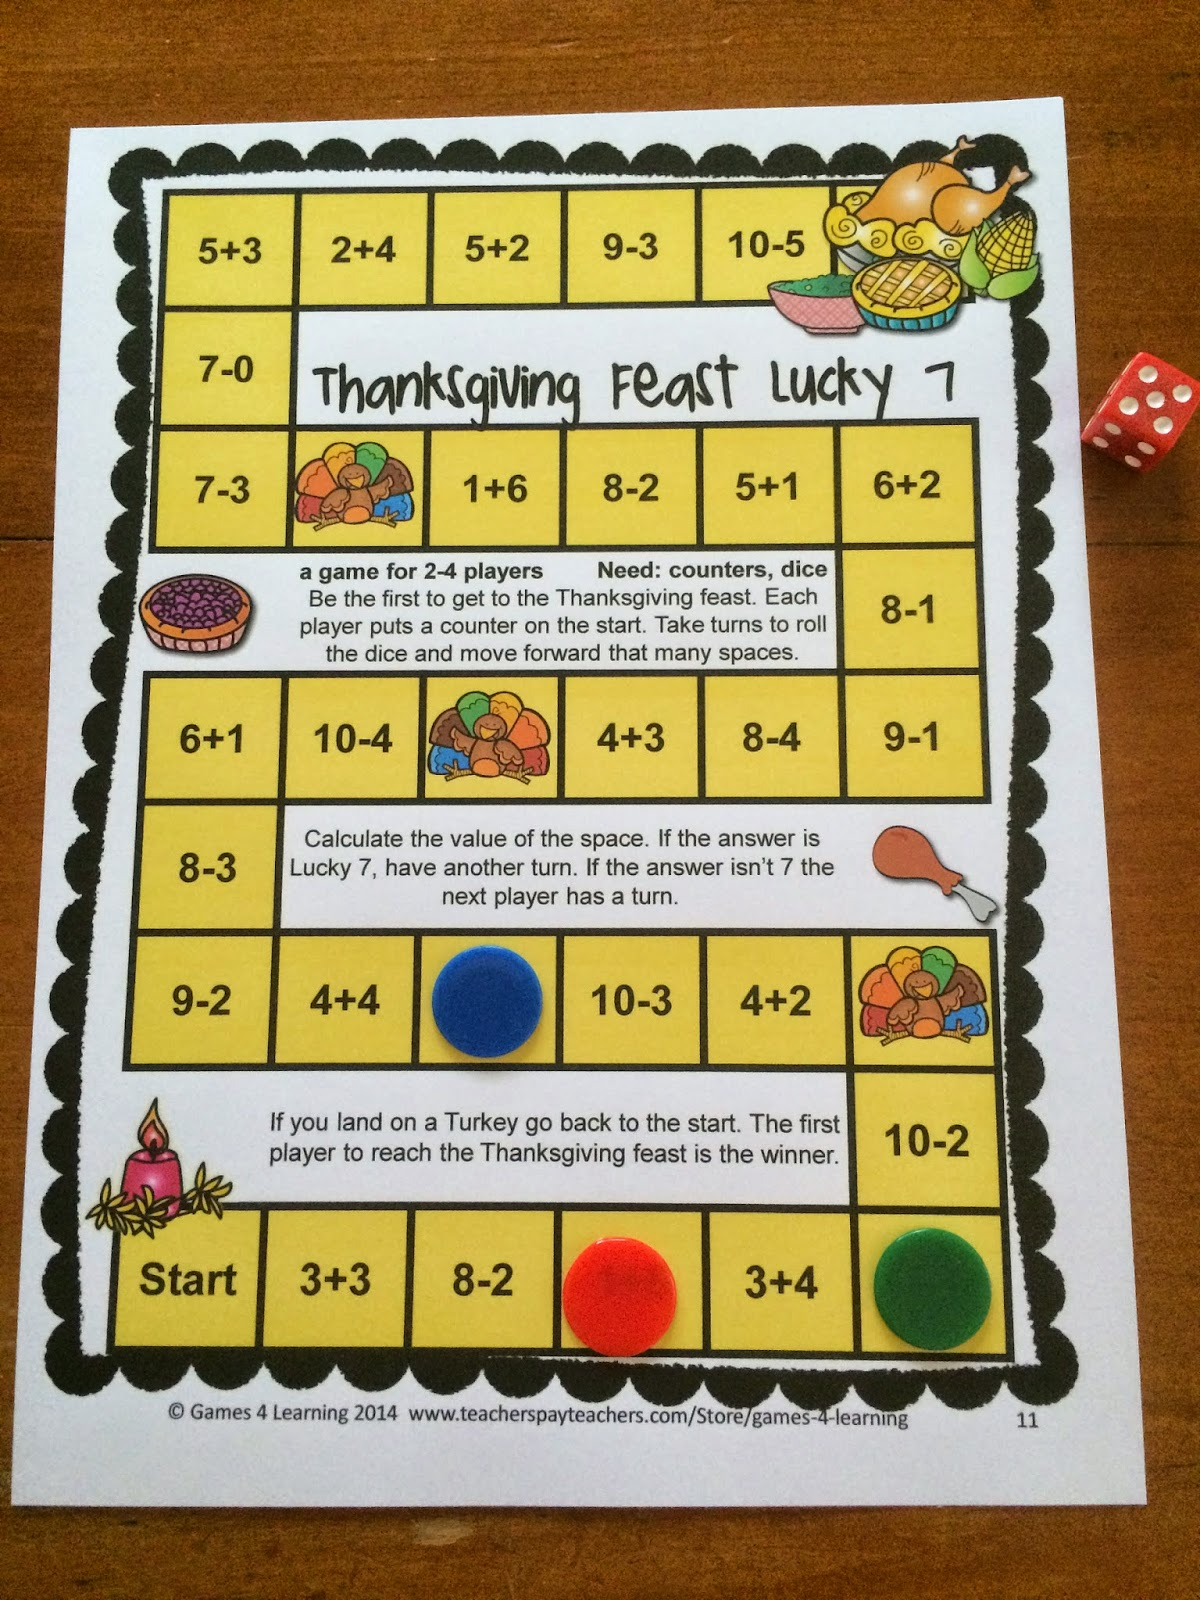 Fun Games 4 Learning  Thanksgiving Math Games Thanksgiving Math Games